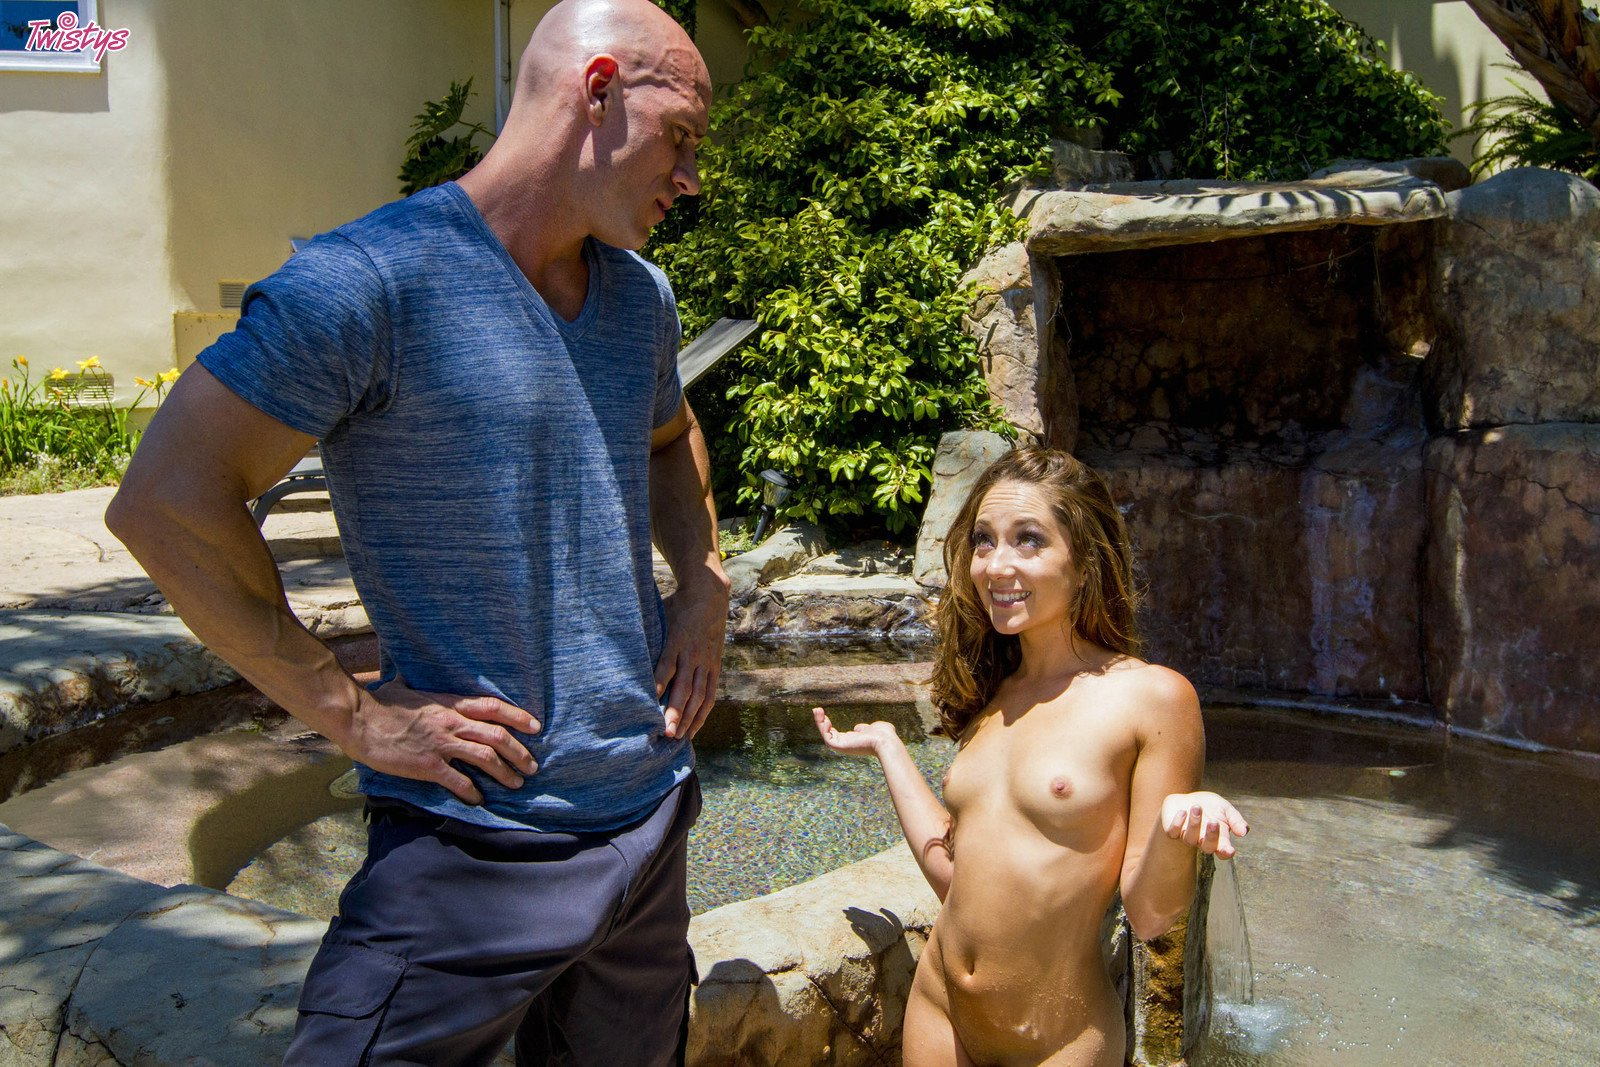 Johnny Sins August Ames